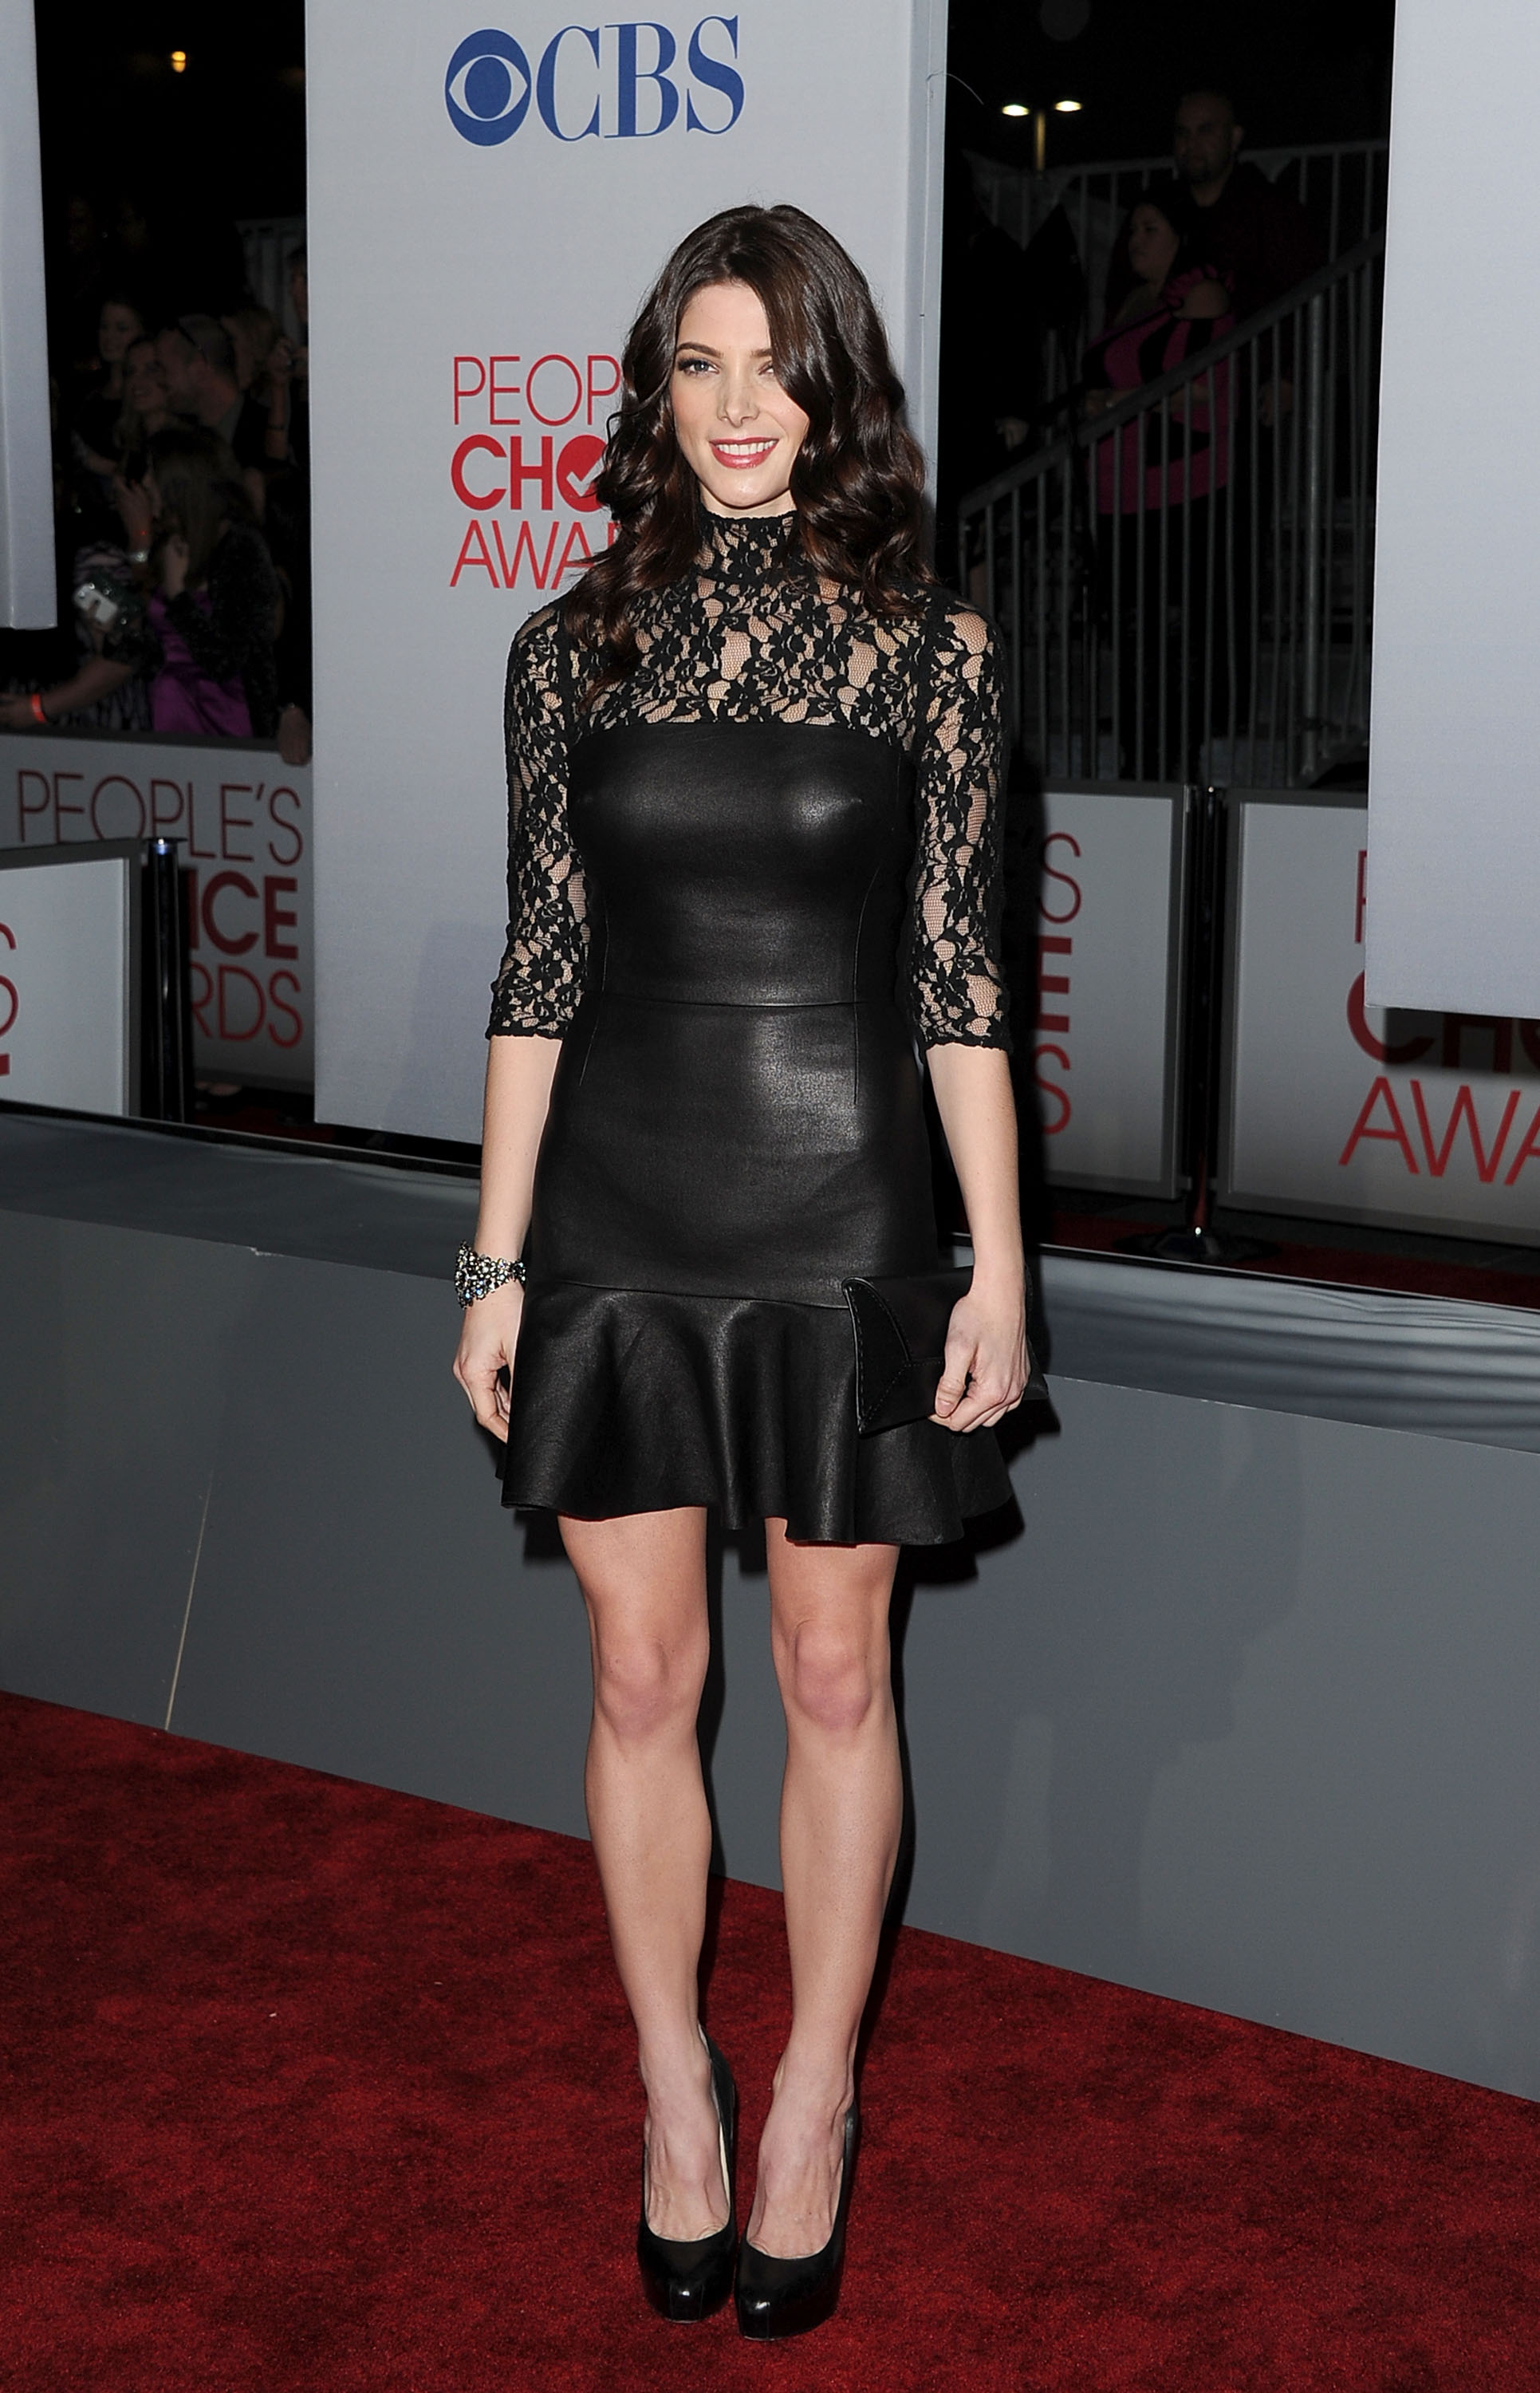 Ashley Greene had long legs on the red carpet at the People's Choice Awards.